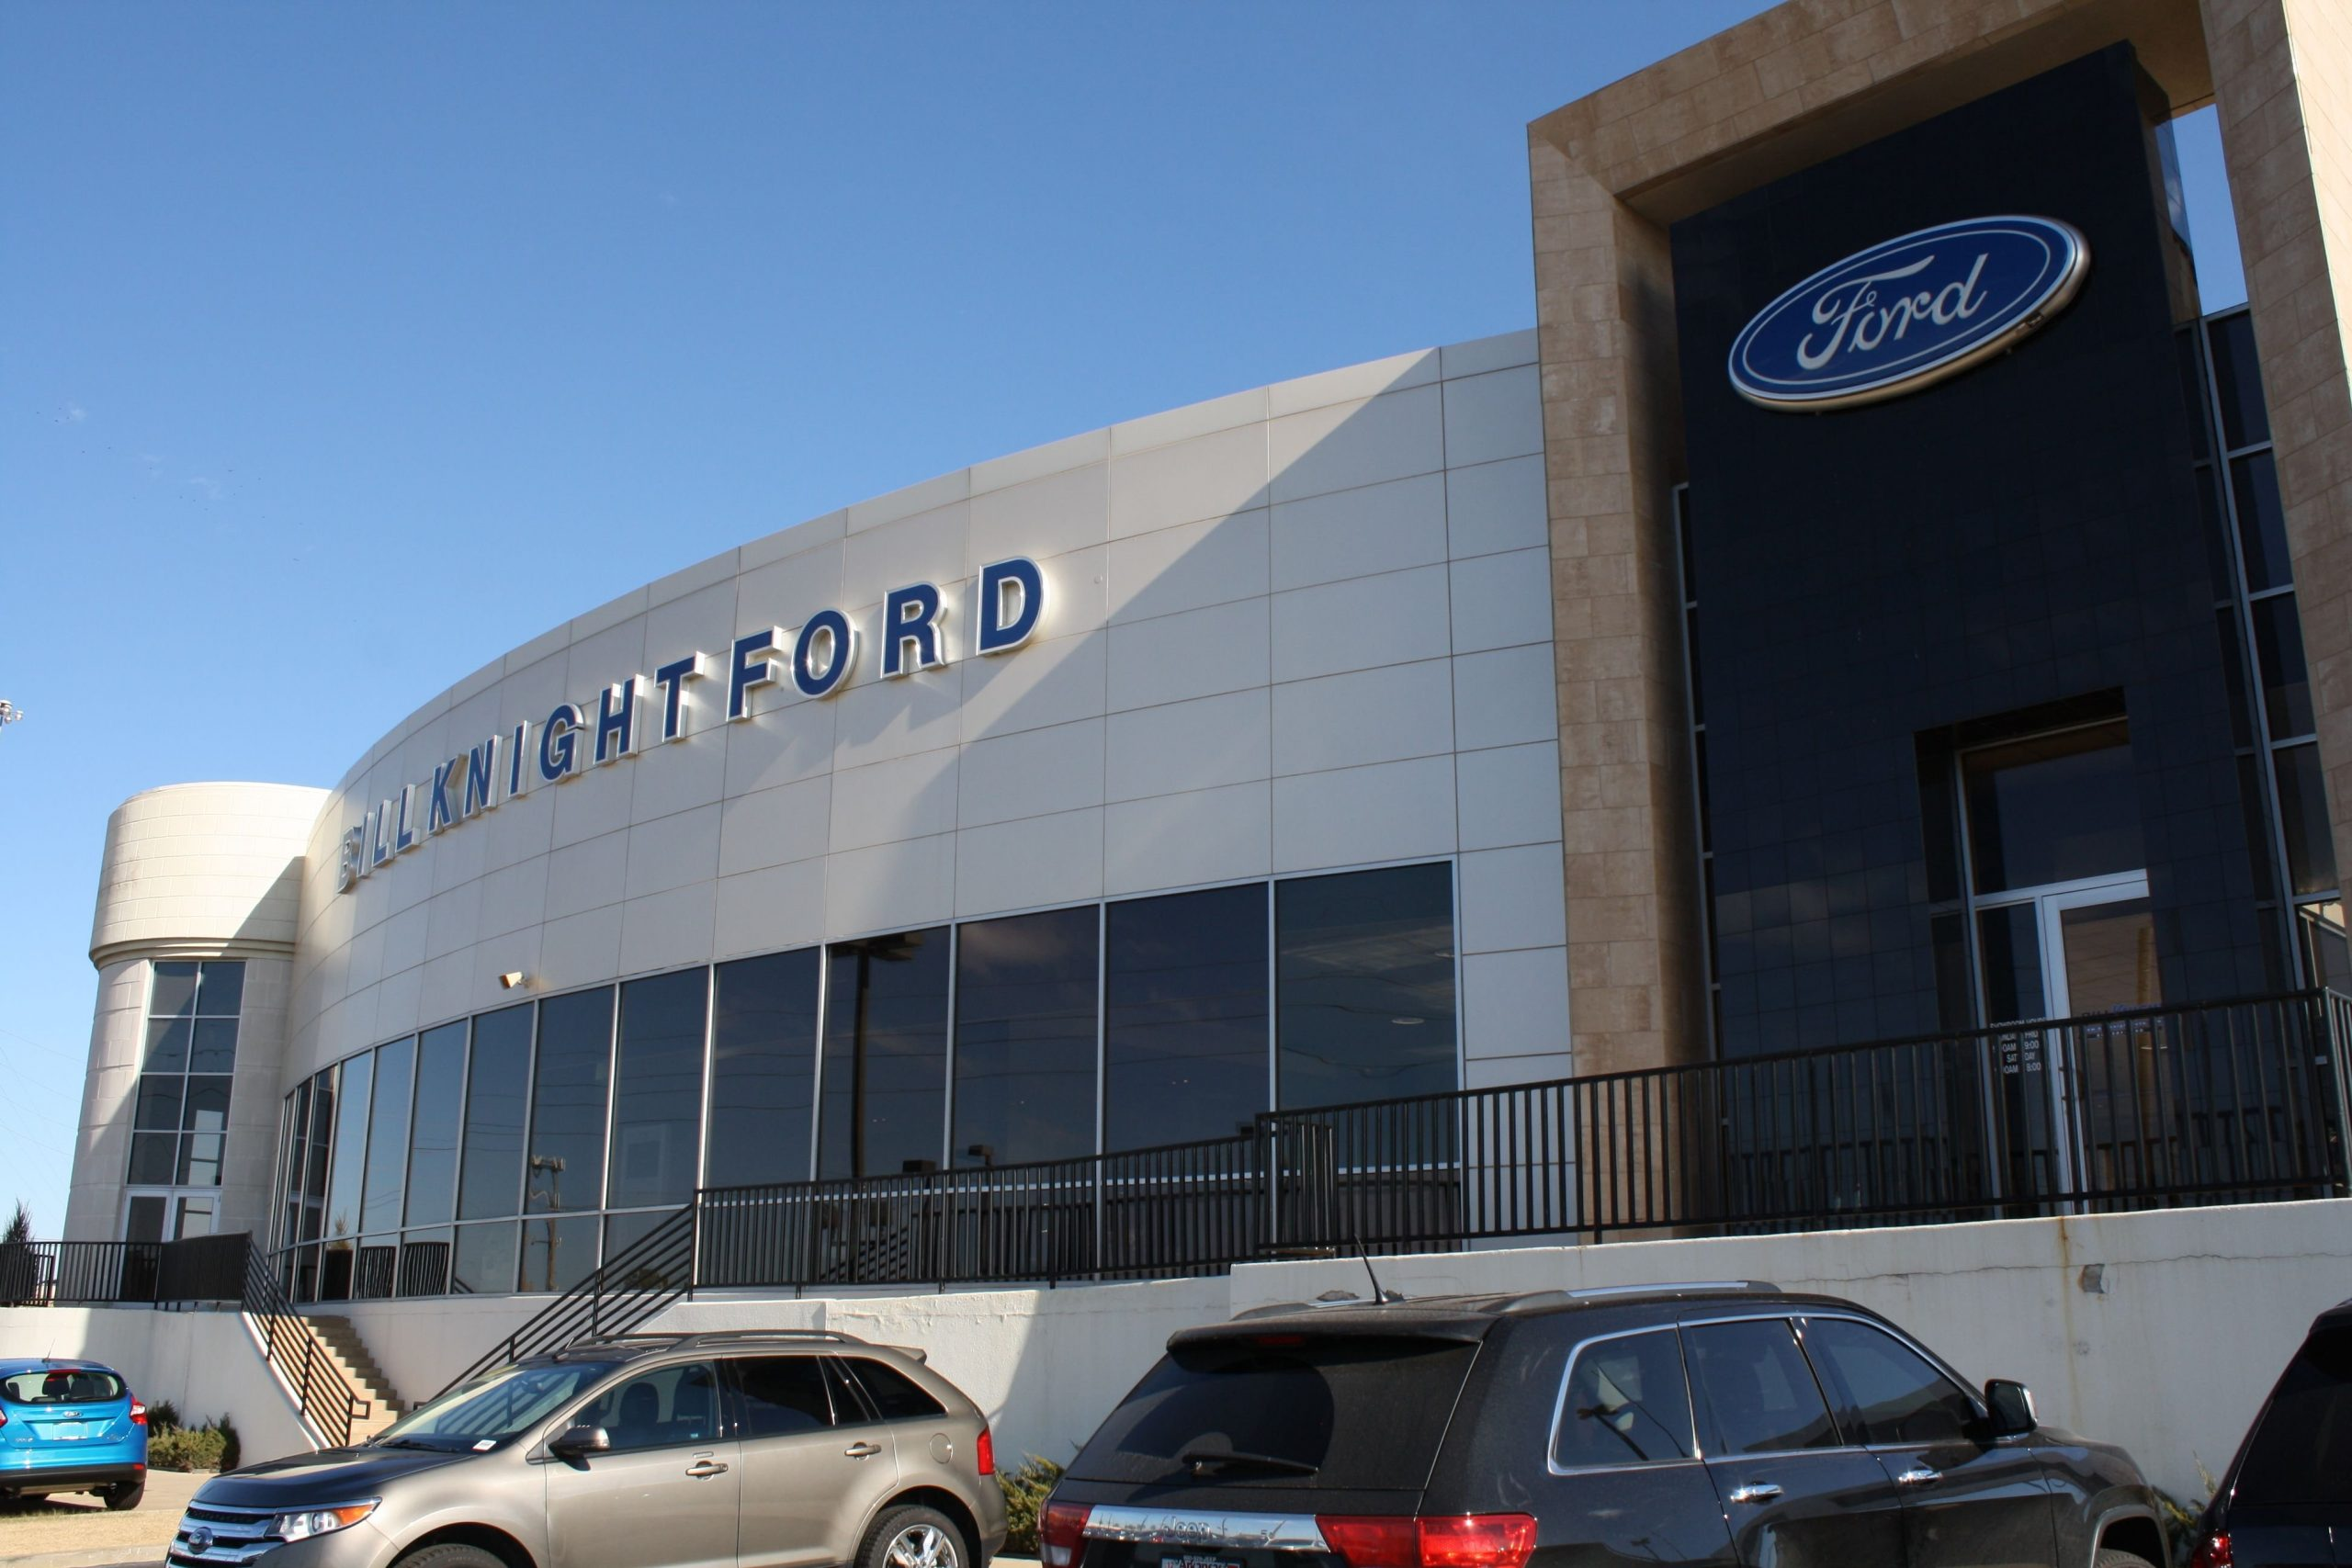 Bill Knight Ford in Oklahoma